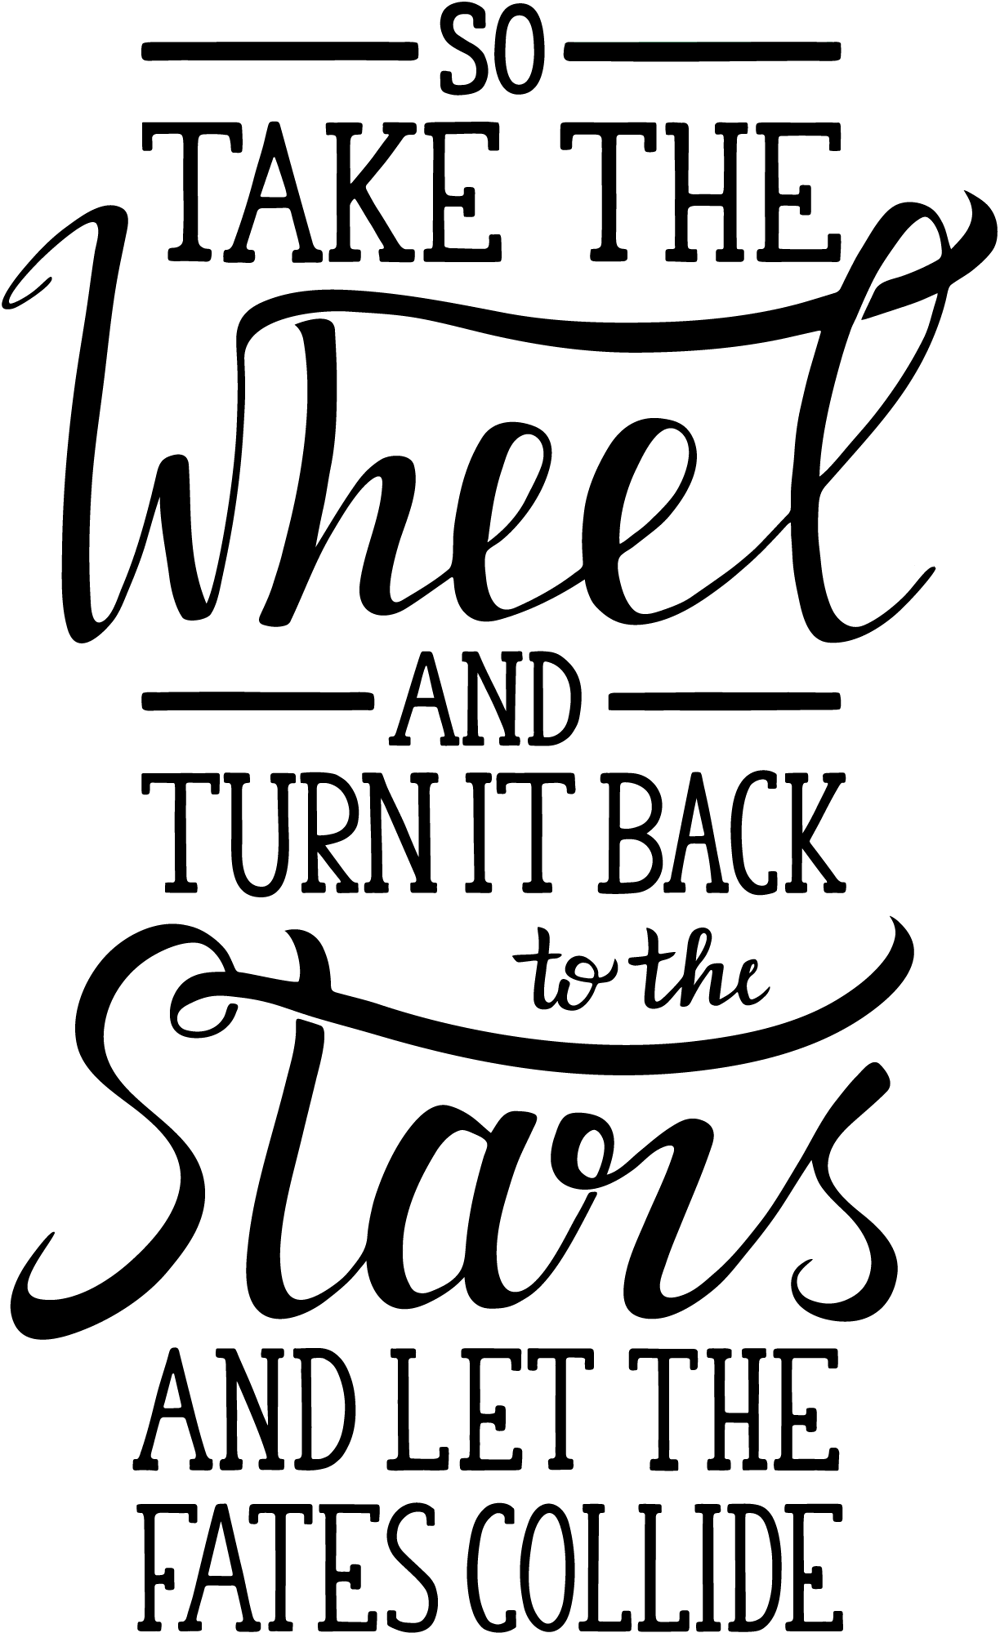 Take the Wheel... - image 1 - student project